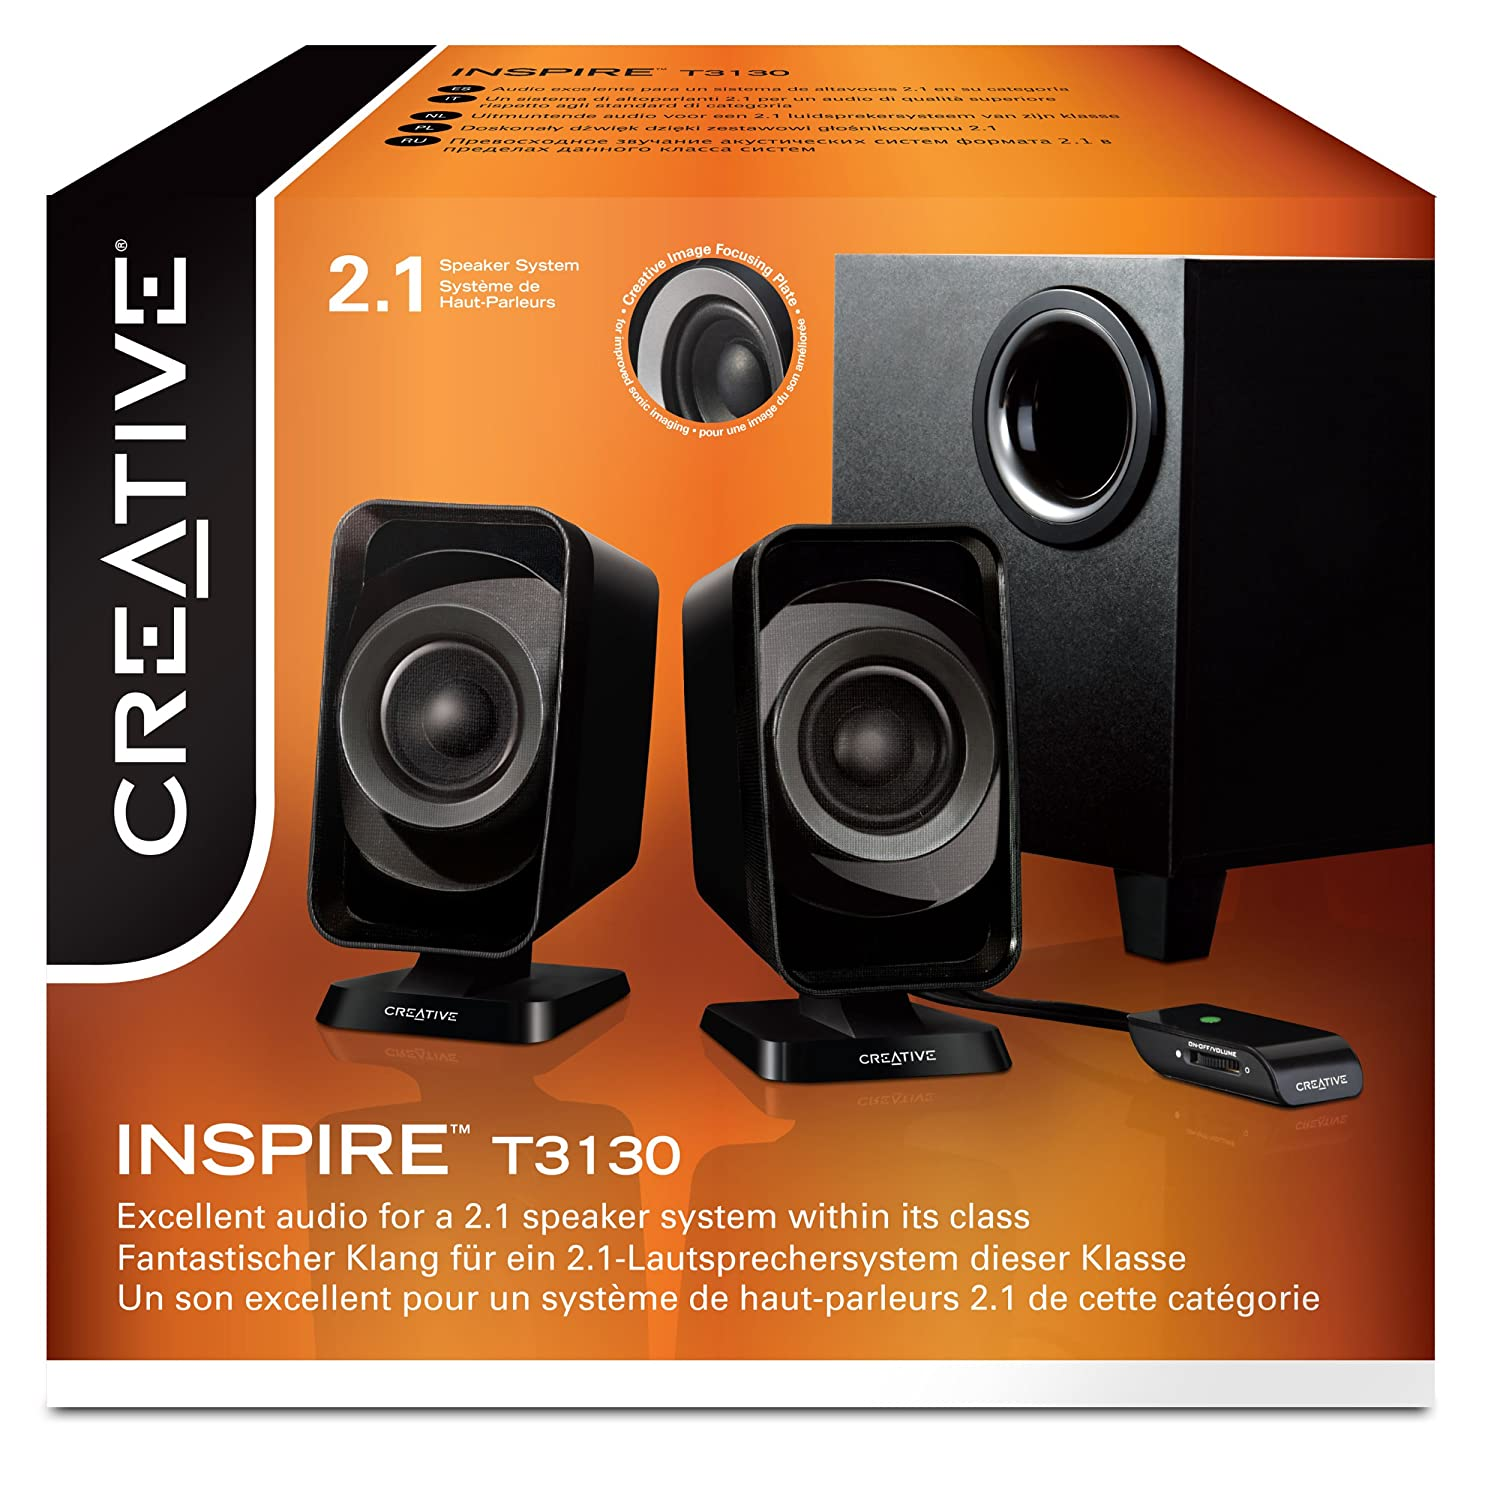 Amazon.com  Creative Inspire T3130 2.1 Multimedia Speaker System   Electronics dd3af3e065548